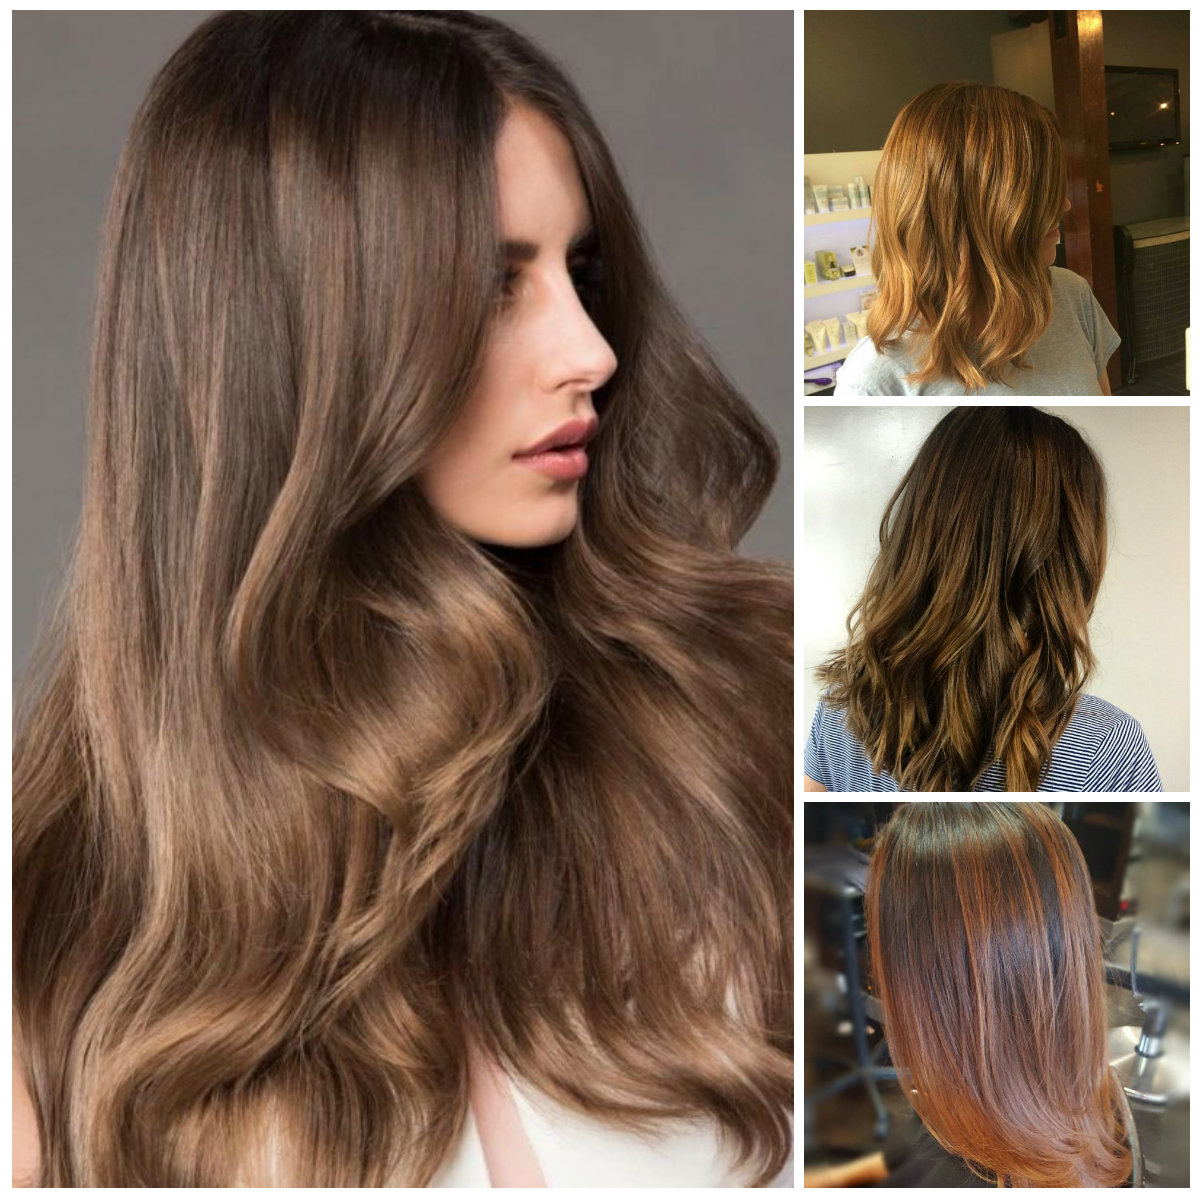 2019 Haircuts Throughout Newest Light Layers Hairstyles Enhanced By Color (Gallery 9 of 20)